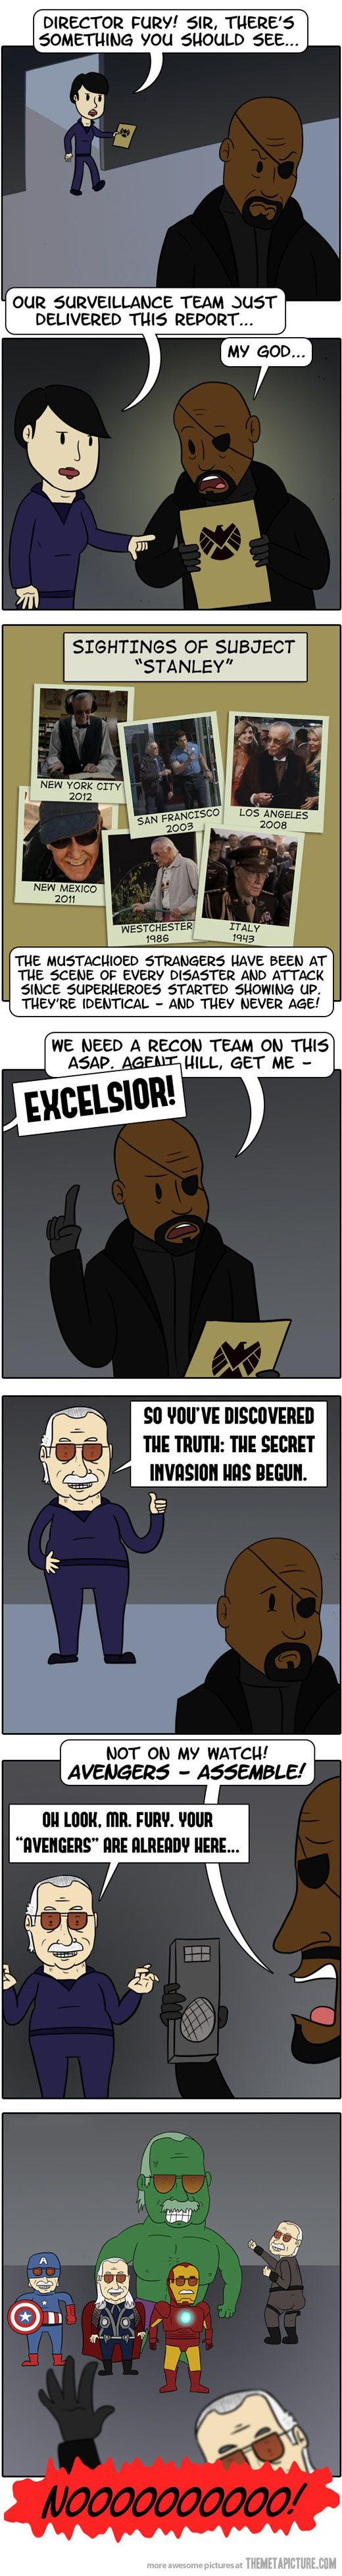 Horrible Secret Behind Every Stan Lee Cameo